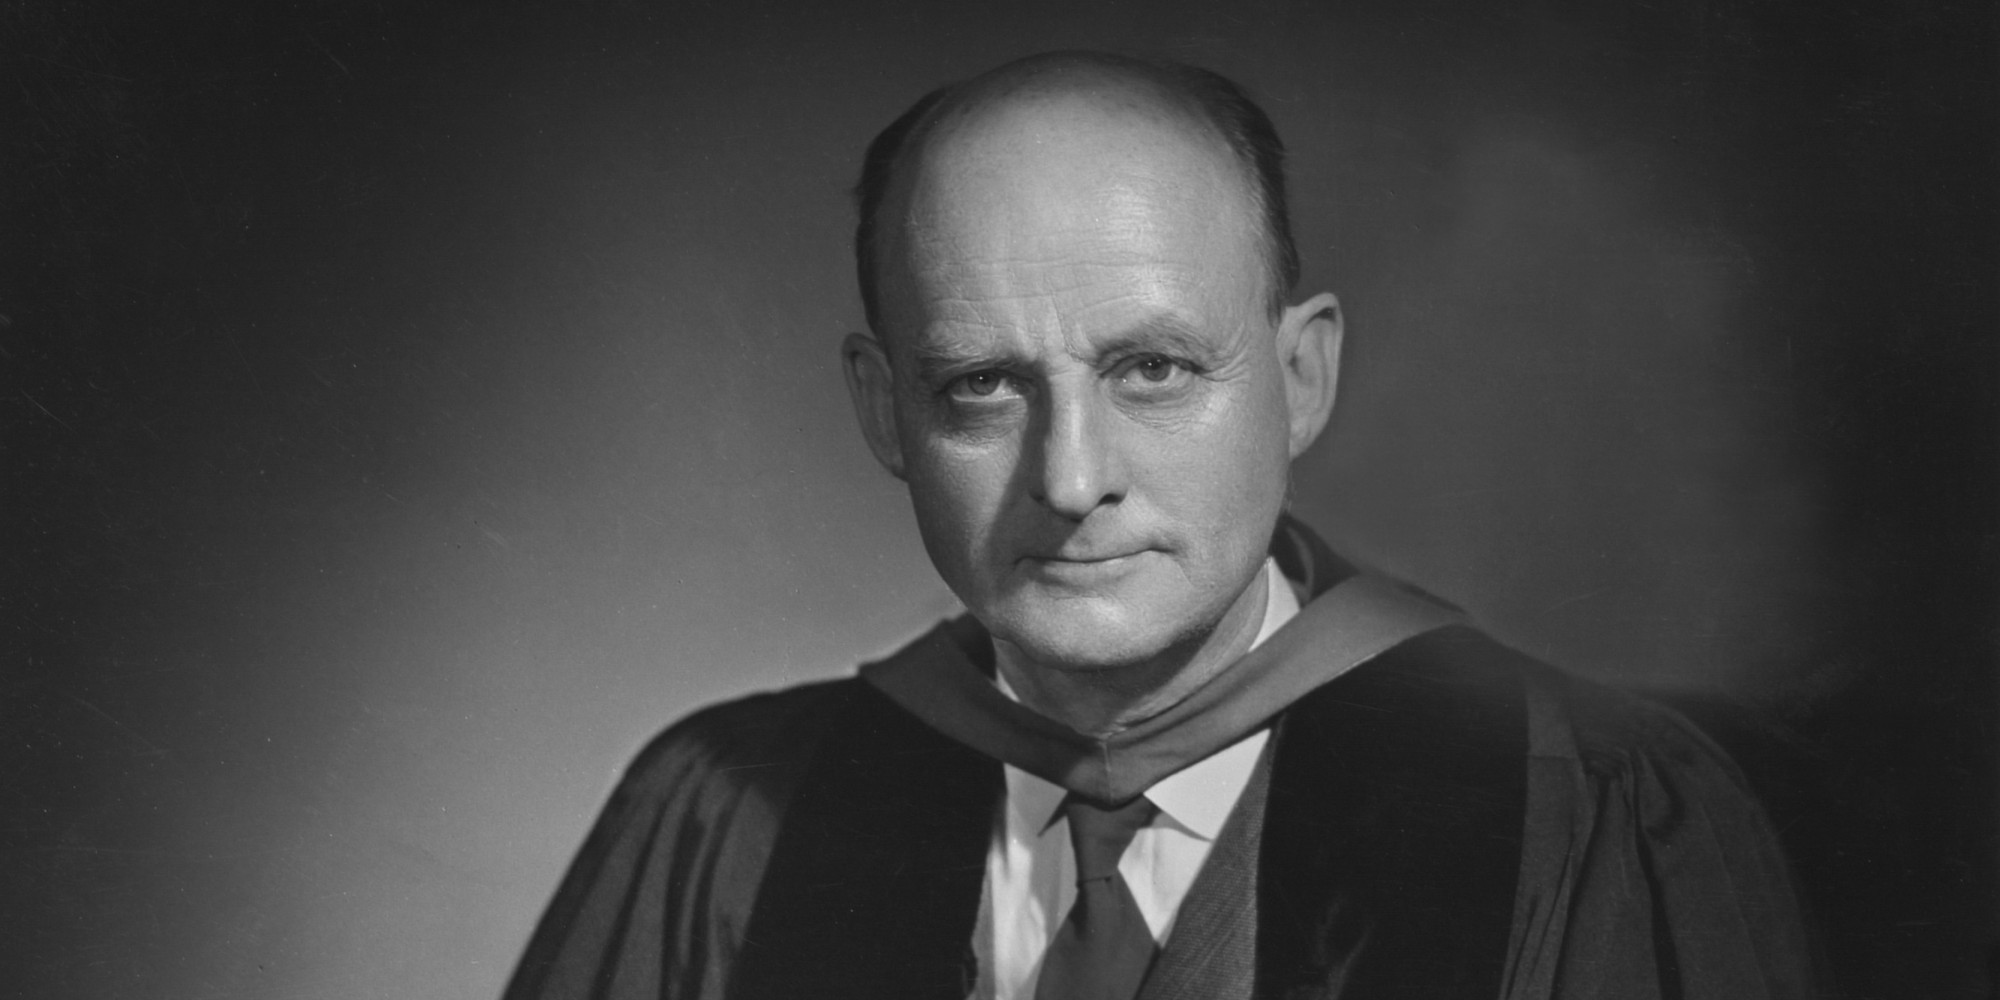 americas greatest theologian of the 21st century reinhold niebuhr Washington (rns)—thirty-six years after his death, protestant theologian reinhold niebuhr seems more alive than ever perhaps not since president jimmy carter acknowledged niebuhr's influence during his 1976 campaign has his name been on the lips of so many politicians and pundits.